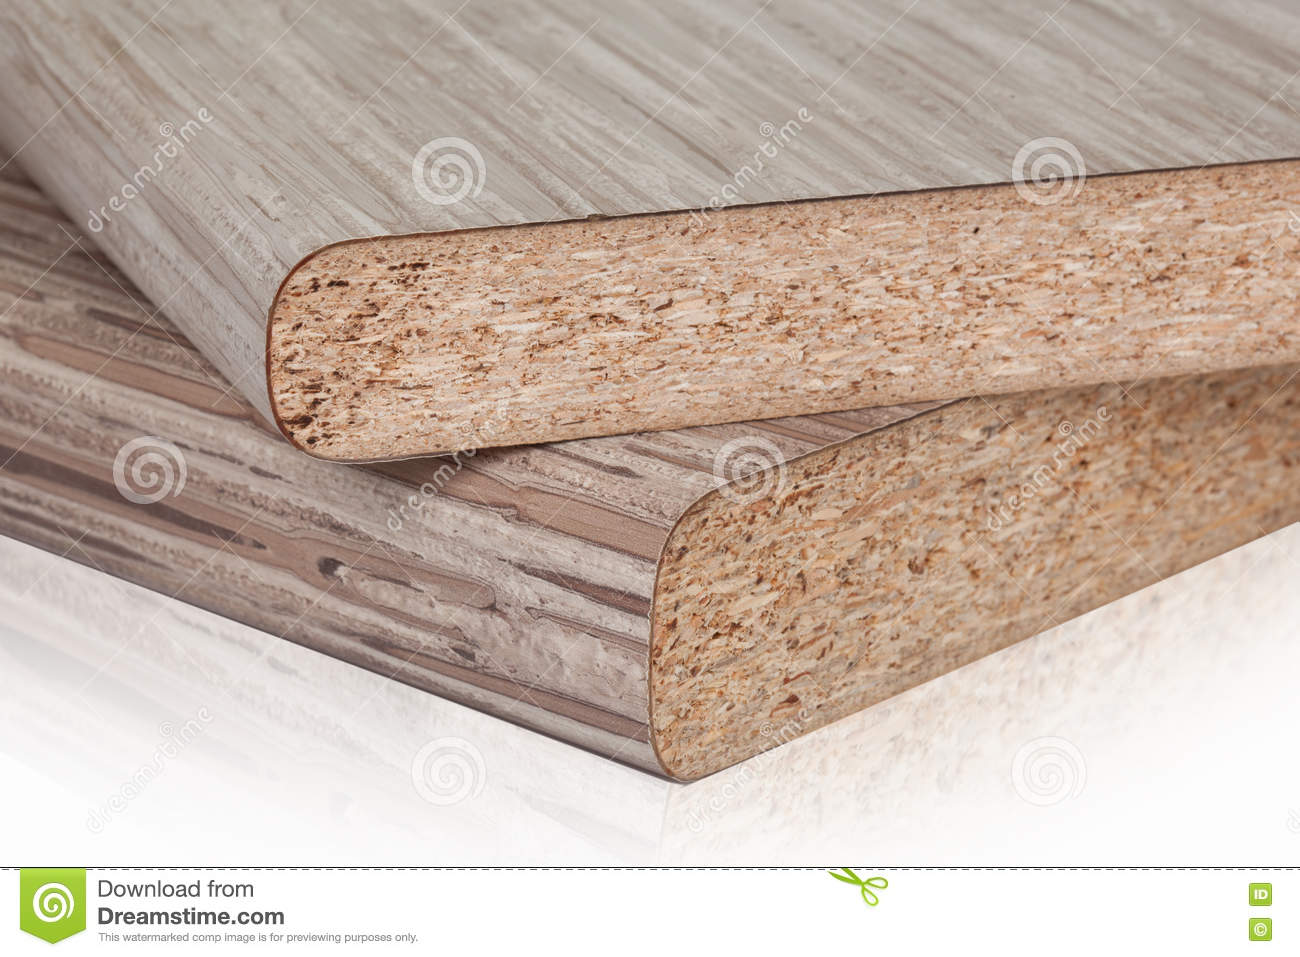 particle wood furniture. Royalty-Free Stock Photo Particle Wood Furniture